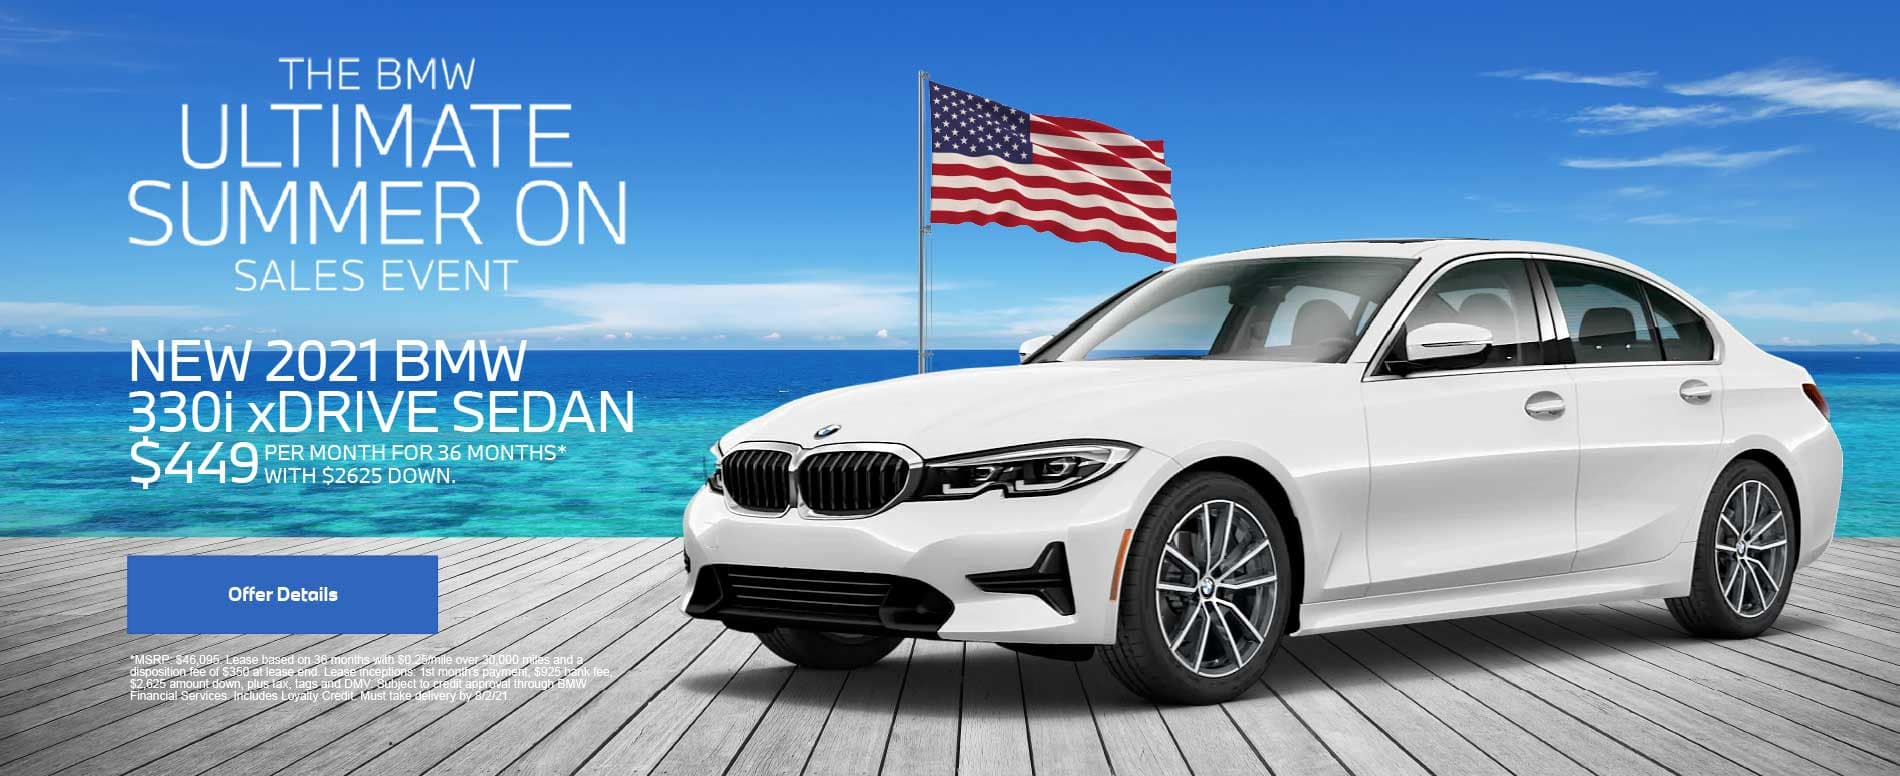 NEW 2021 BMW 330i xDRIVE SEDAN $449 PER MONTH FOR 36 MONTHS* WITH $2625 DOWN.